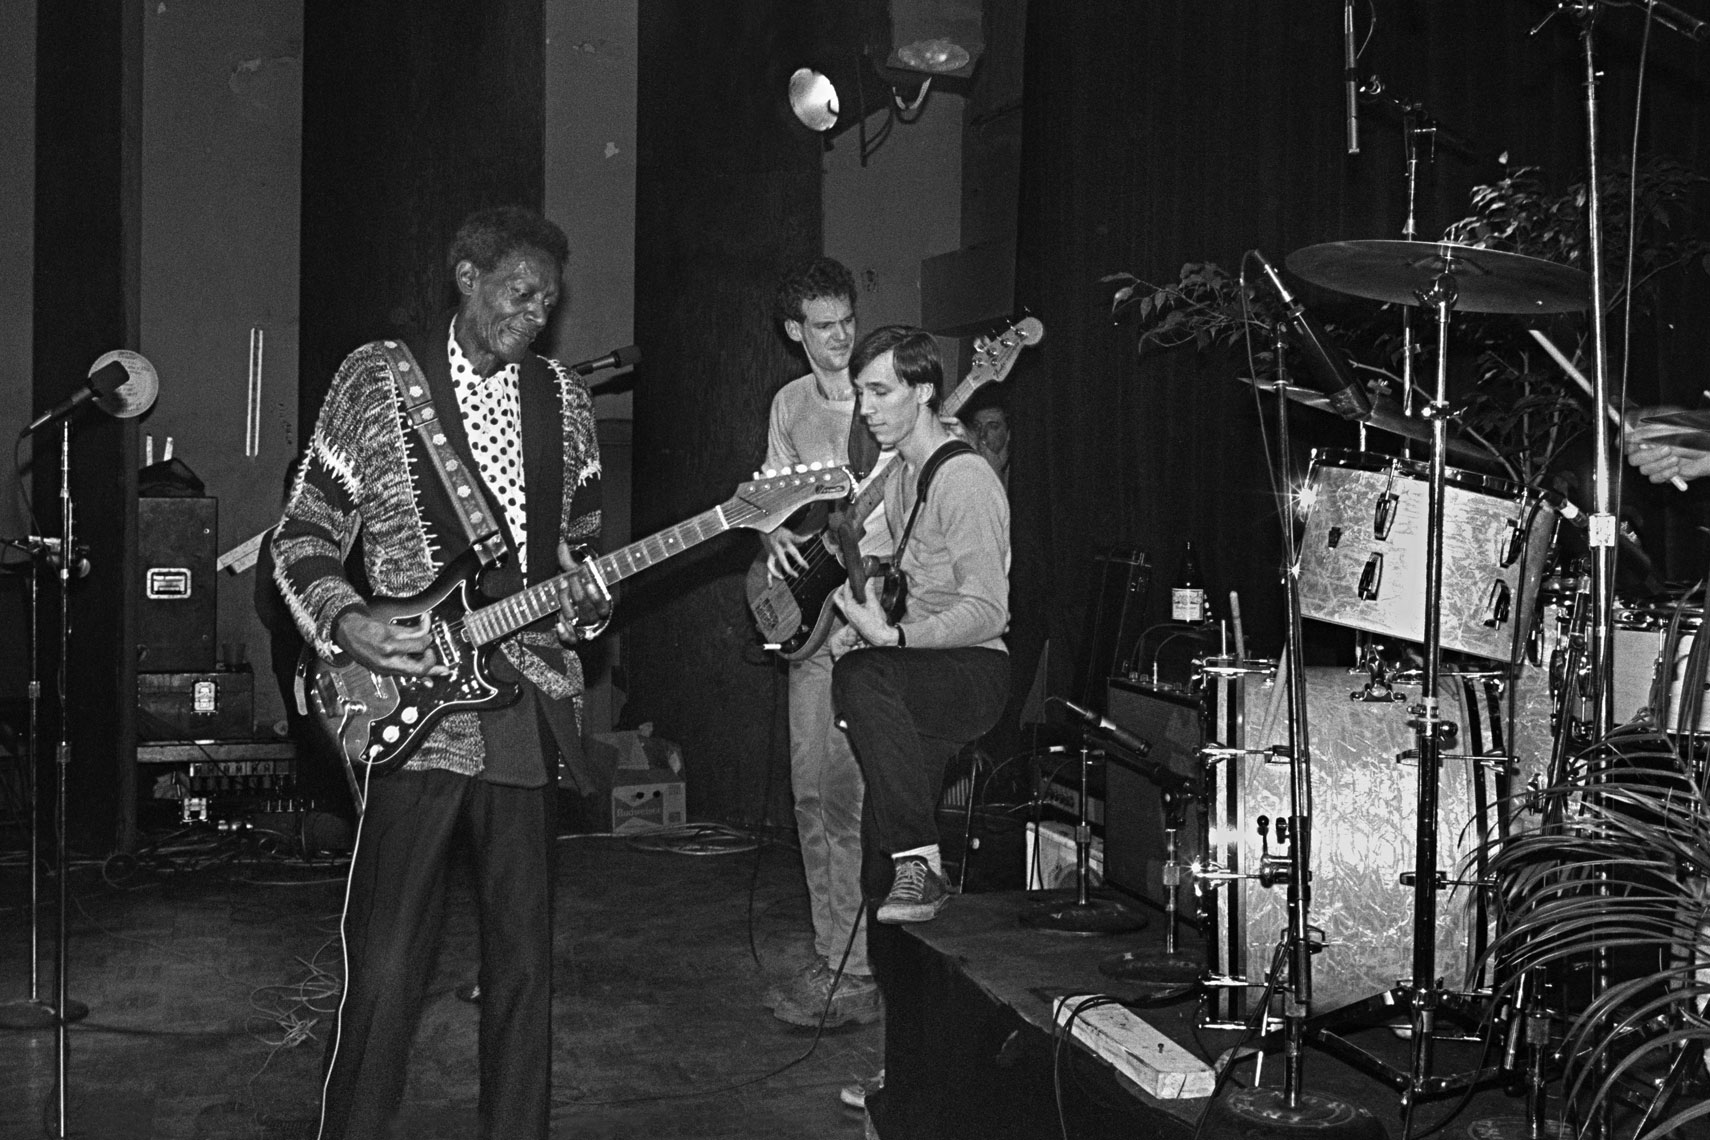 095_102_The-Fleshtones-with-Lee-Scratch-Perry_Irving_Plaza